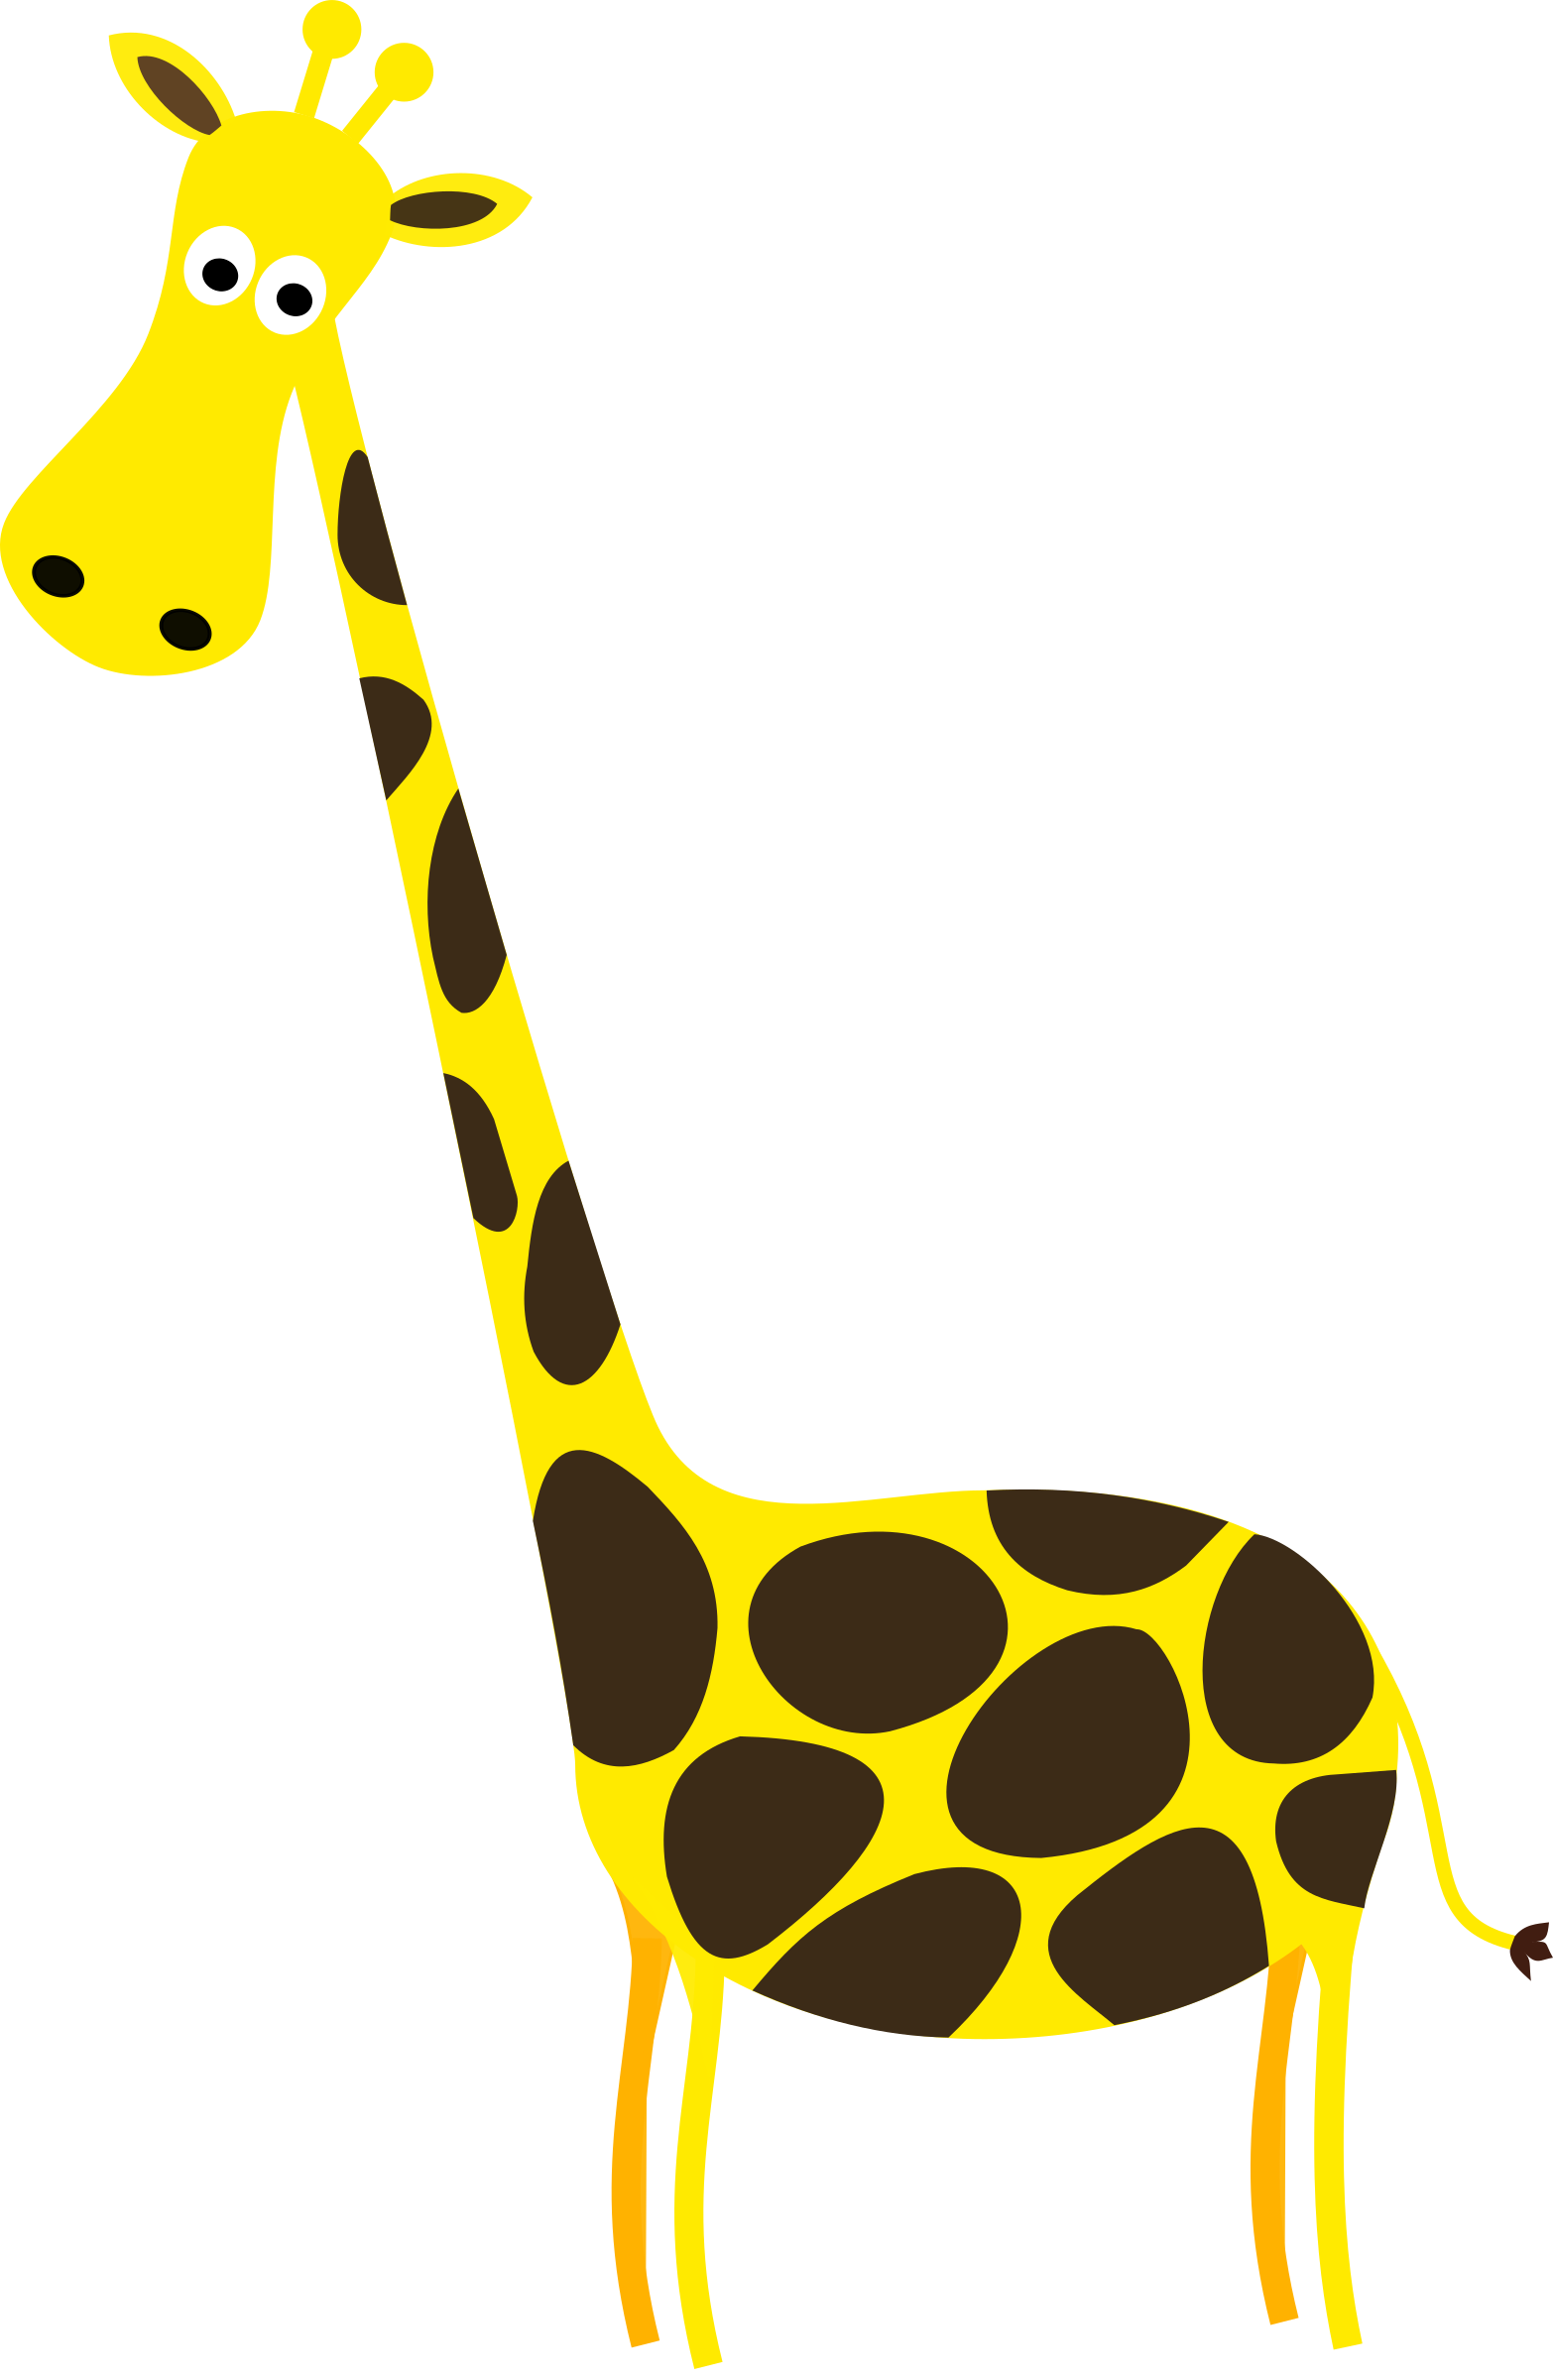 Giraffe clip art png. Sympa icons free and